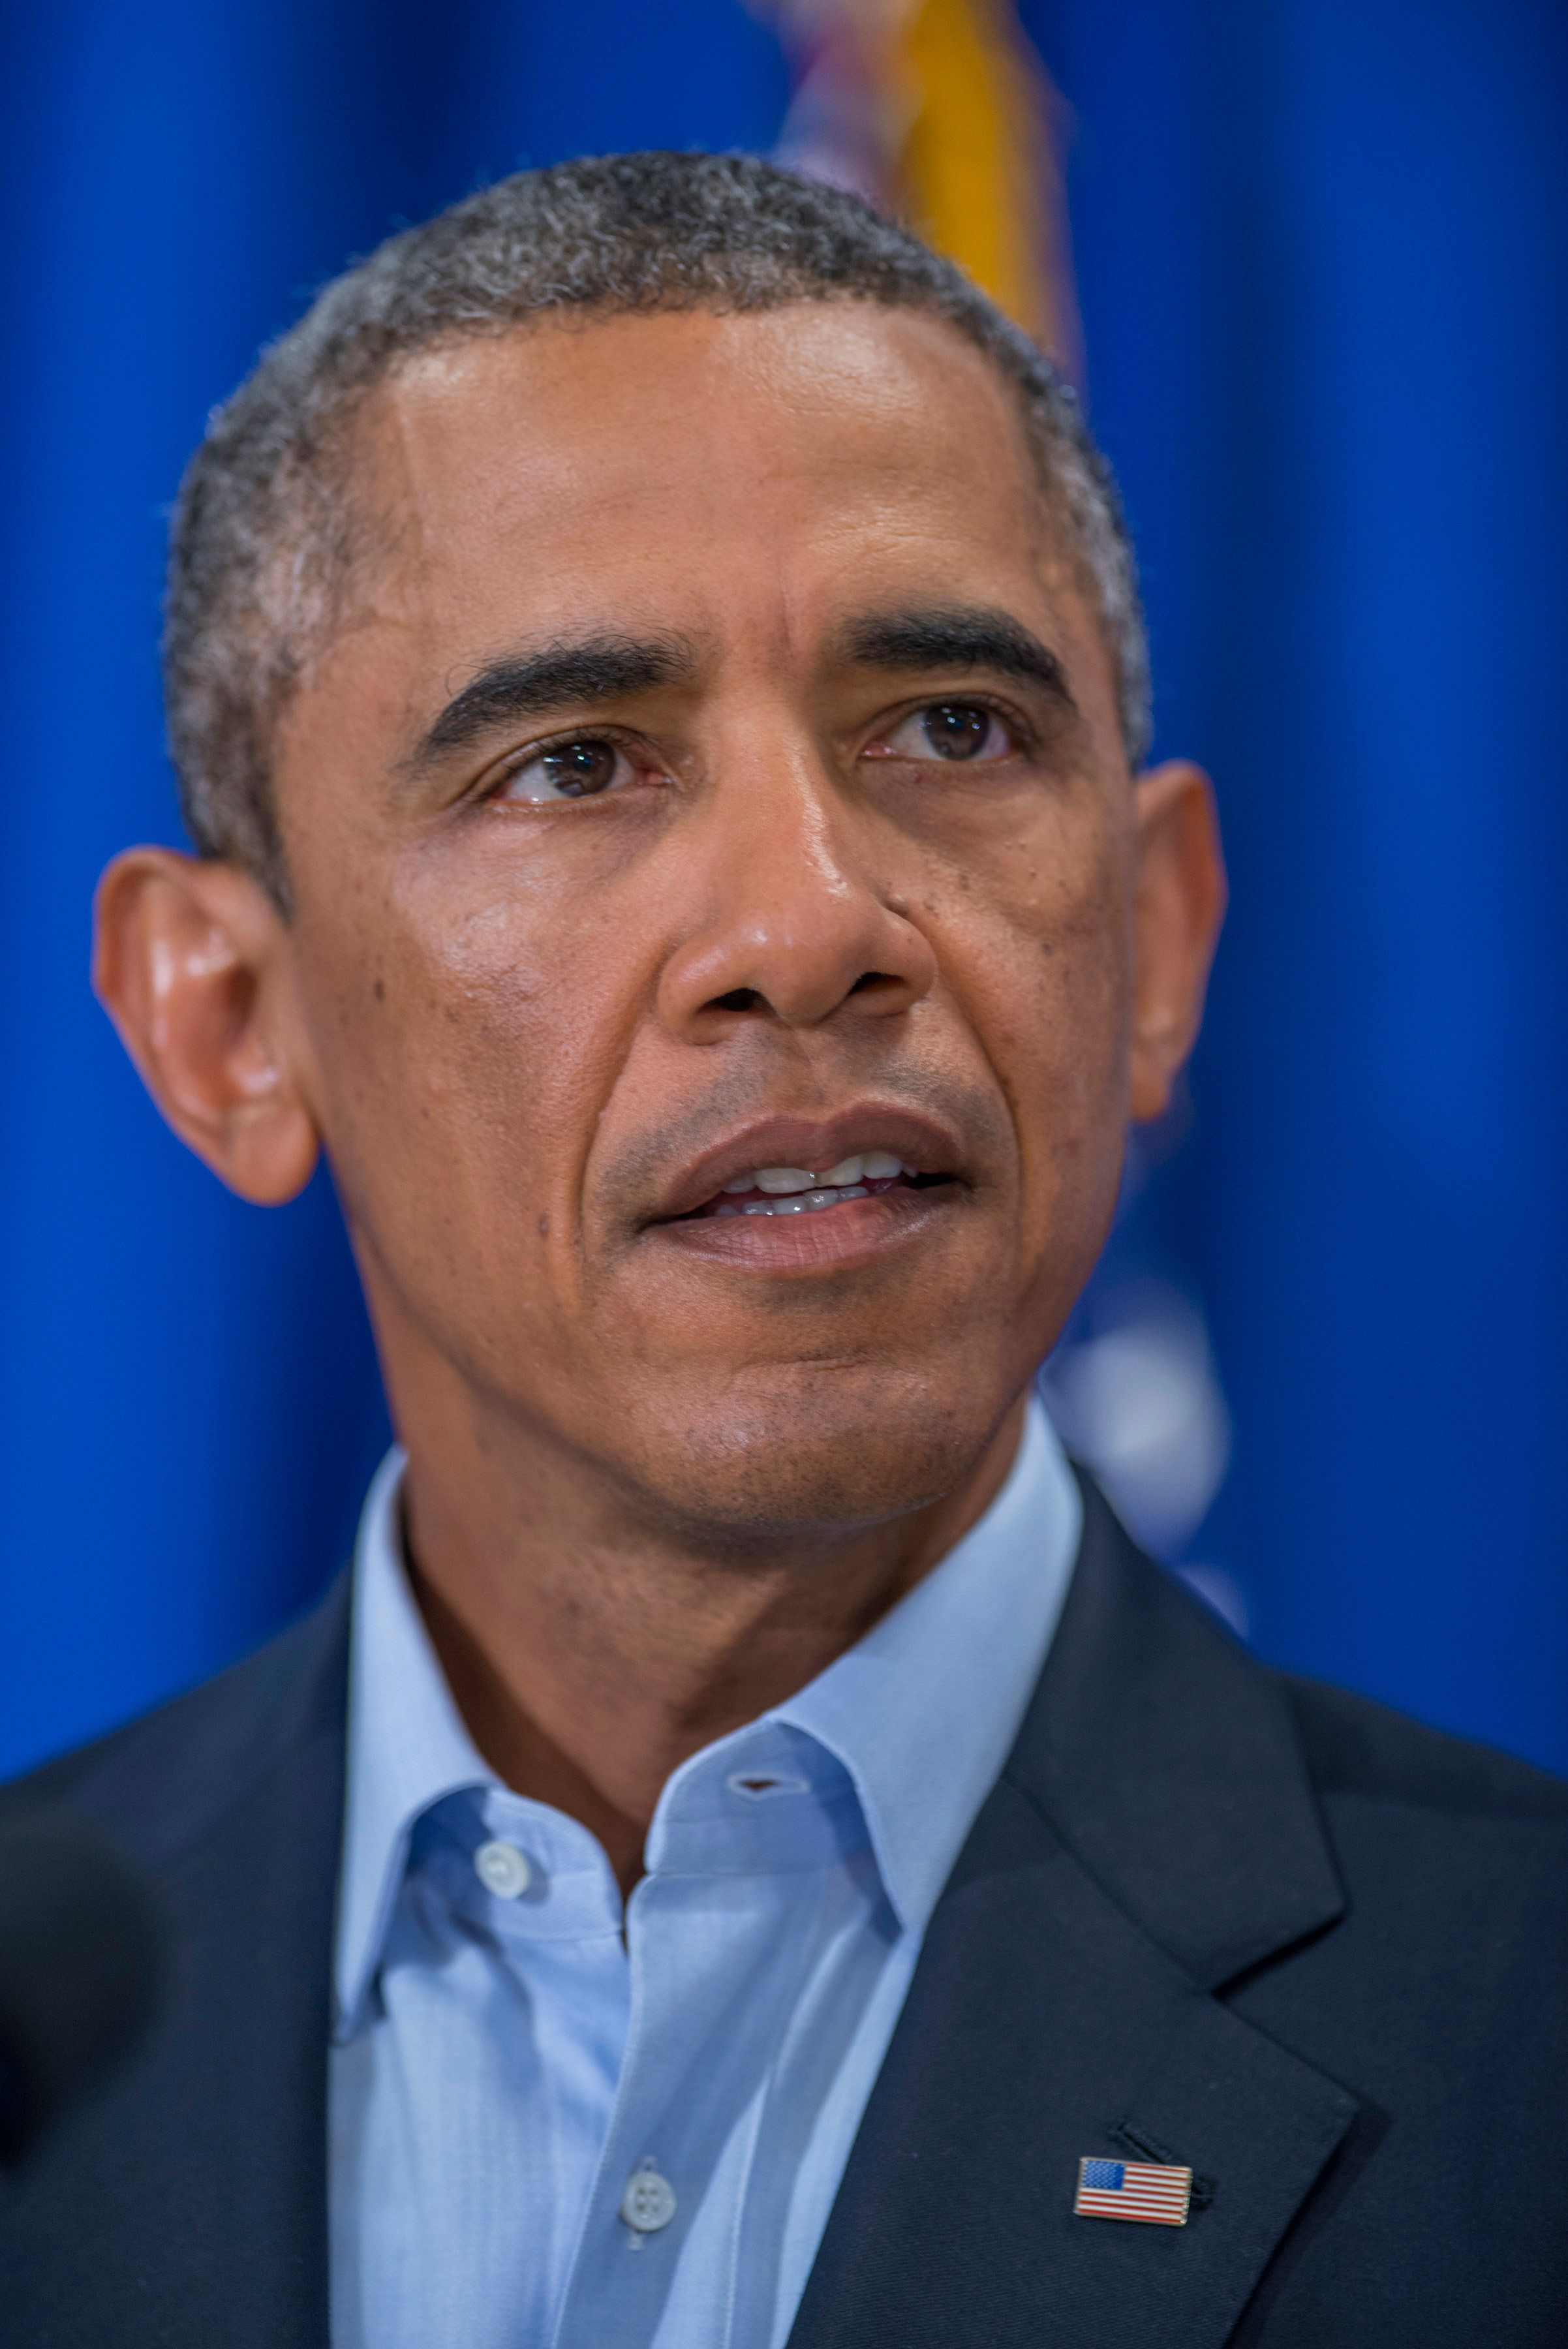 President Barack Obama speaking about the murder of journalist James Foley during a press briefing at the press filing center at the Edgartown School in Edgartown, Martha's Vineyard, MA on August 20, 2014.   (Photo by Rick Friedman/WHITE HOUSE POOL (ISP POOL IMAGES)/Corbis/VCG via Getty Images)